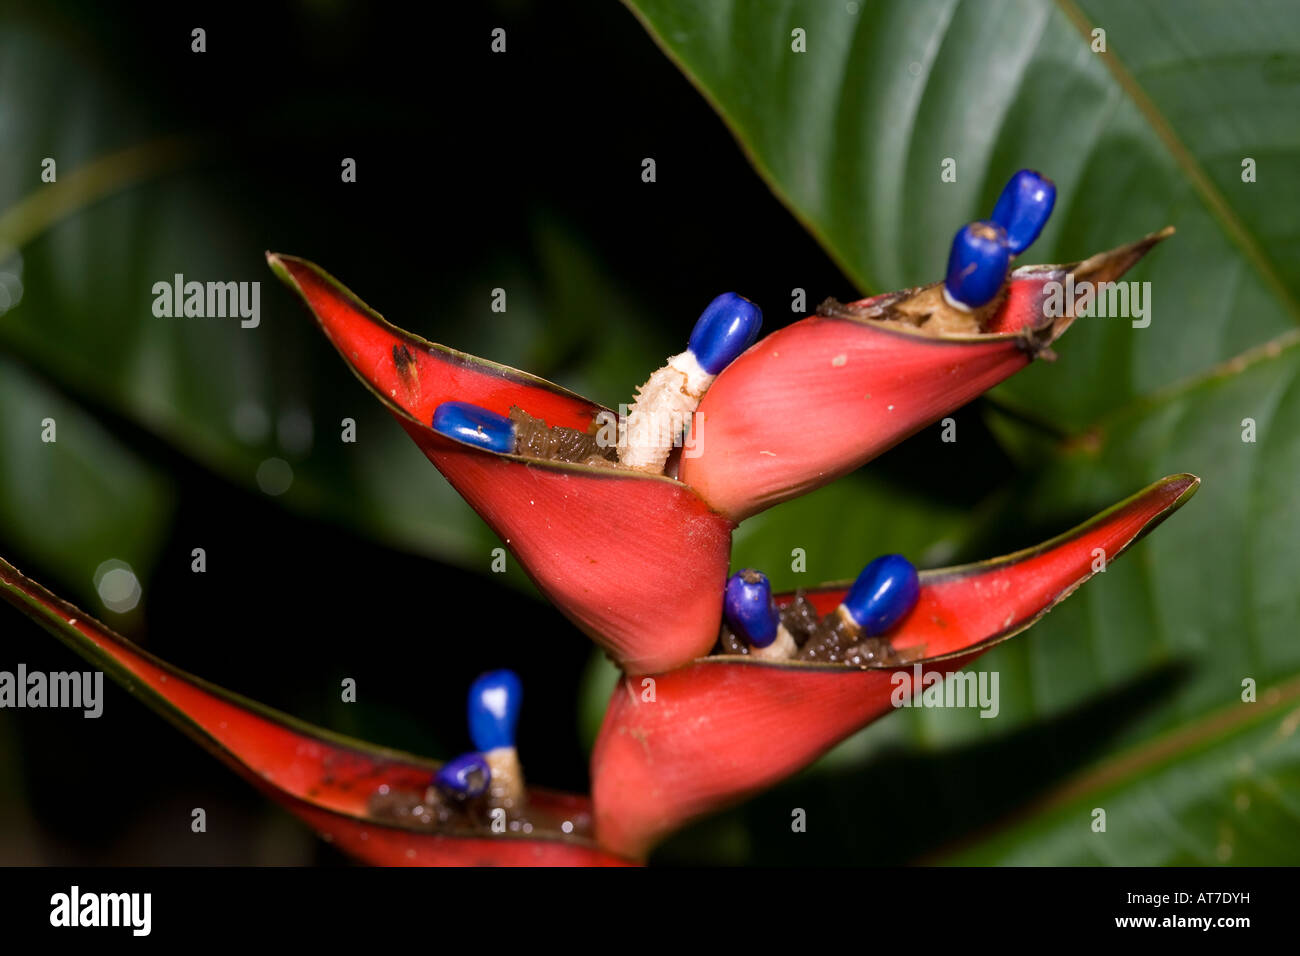 Lobster-claw, Wild Plantain (Heliconia stricta) - Stock Image